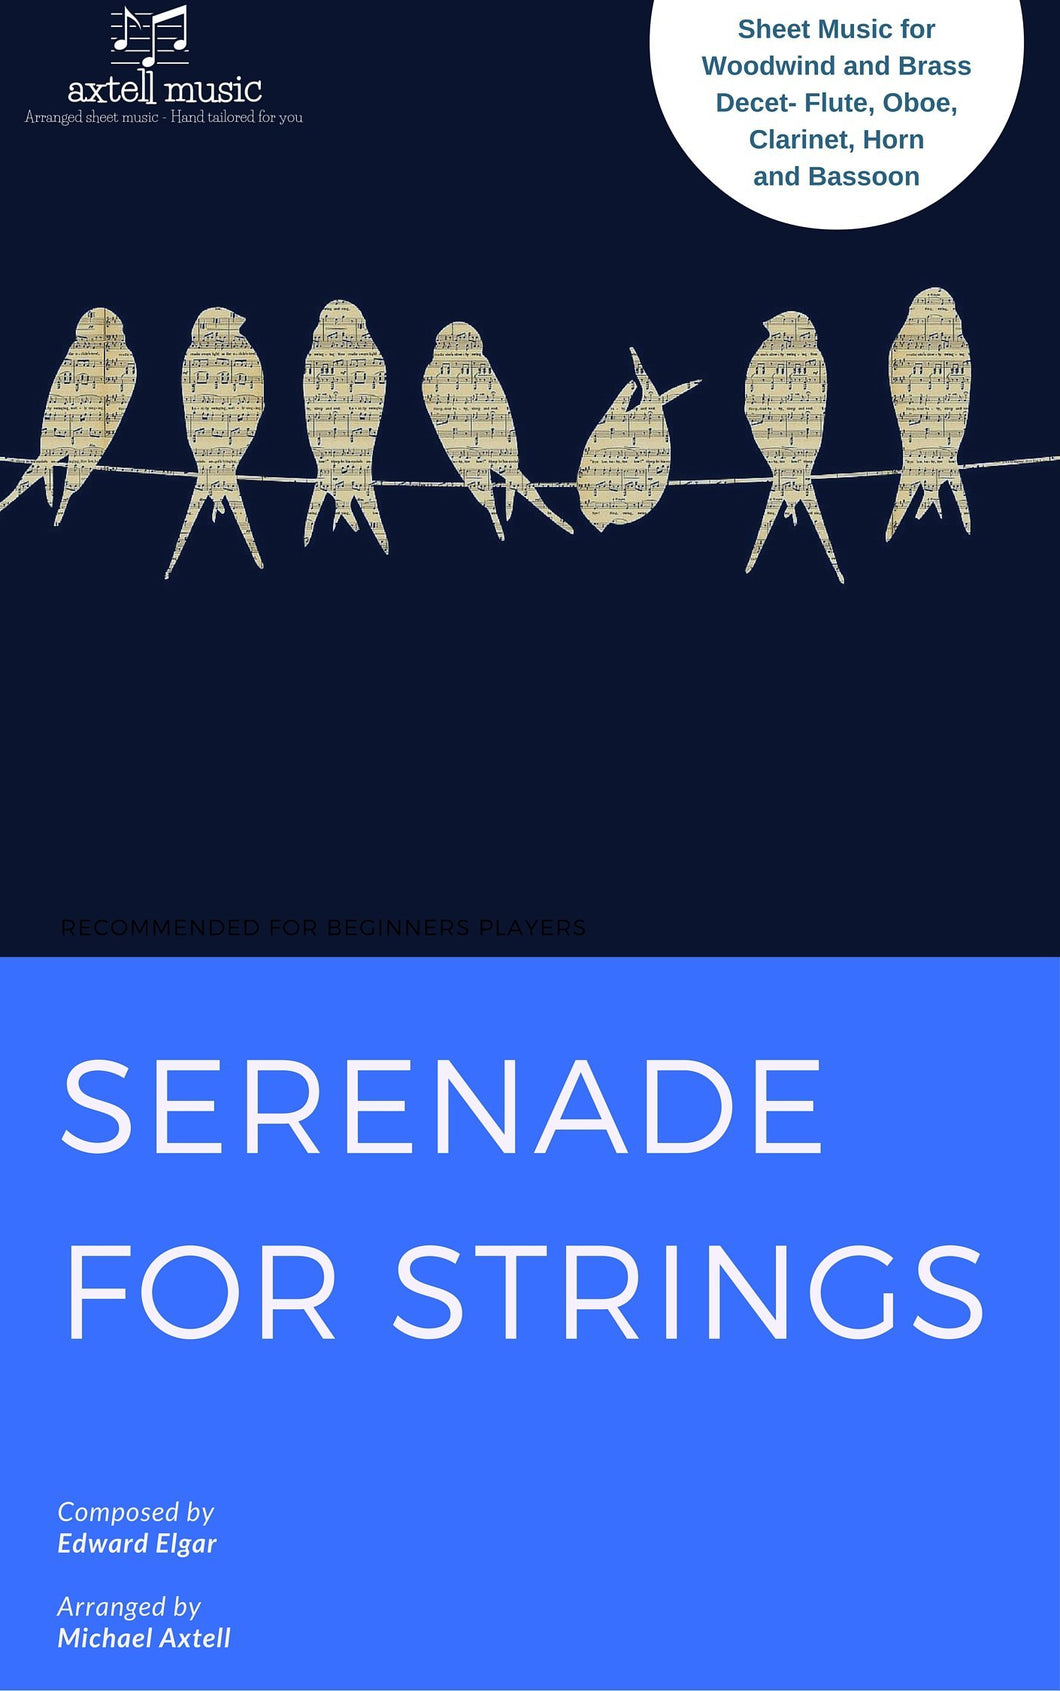 Cover art for Serenade for Strings, Movement 1 - Edvard Elgar: Woodwind Sheet Music | Axtell Music Flute, Oboe, Clarinet, Horn, Bassoon